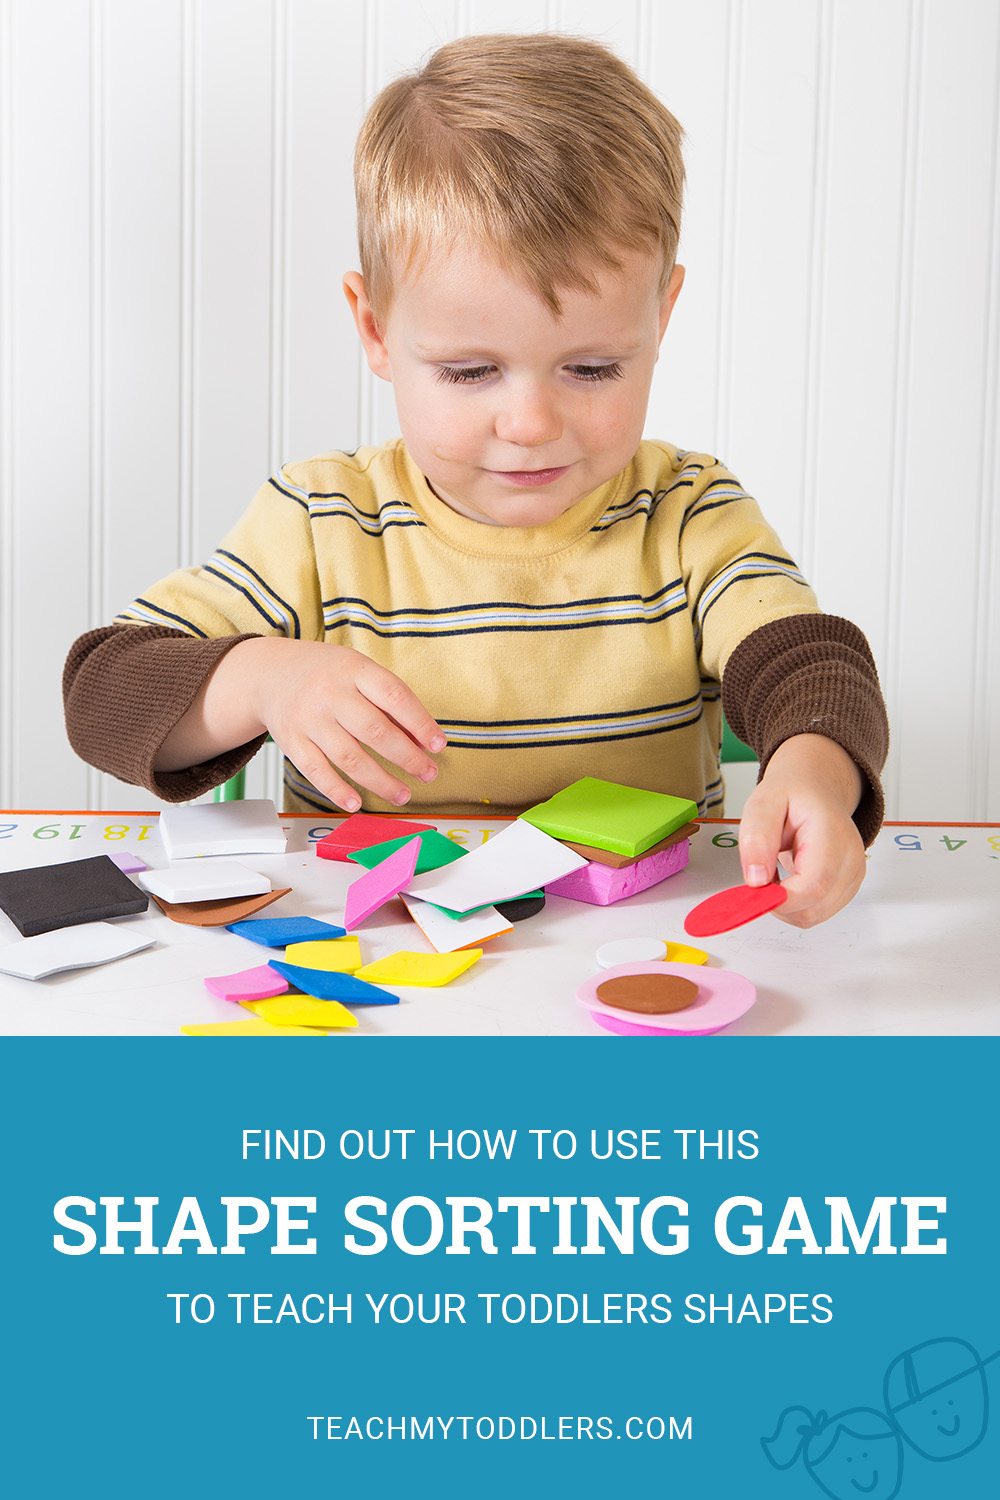 Find out how to use this shape sorting game to teach your toddlers shapes